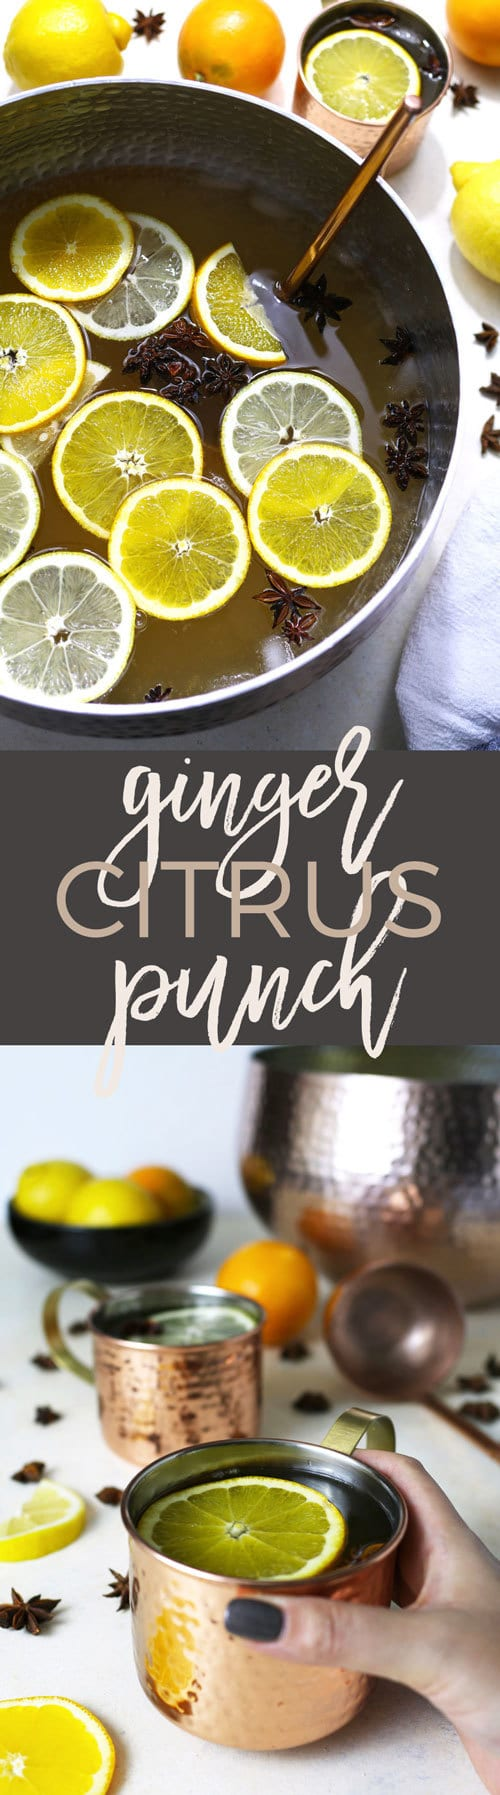 ginger citrus punch pin